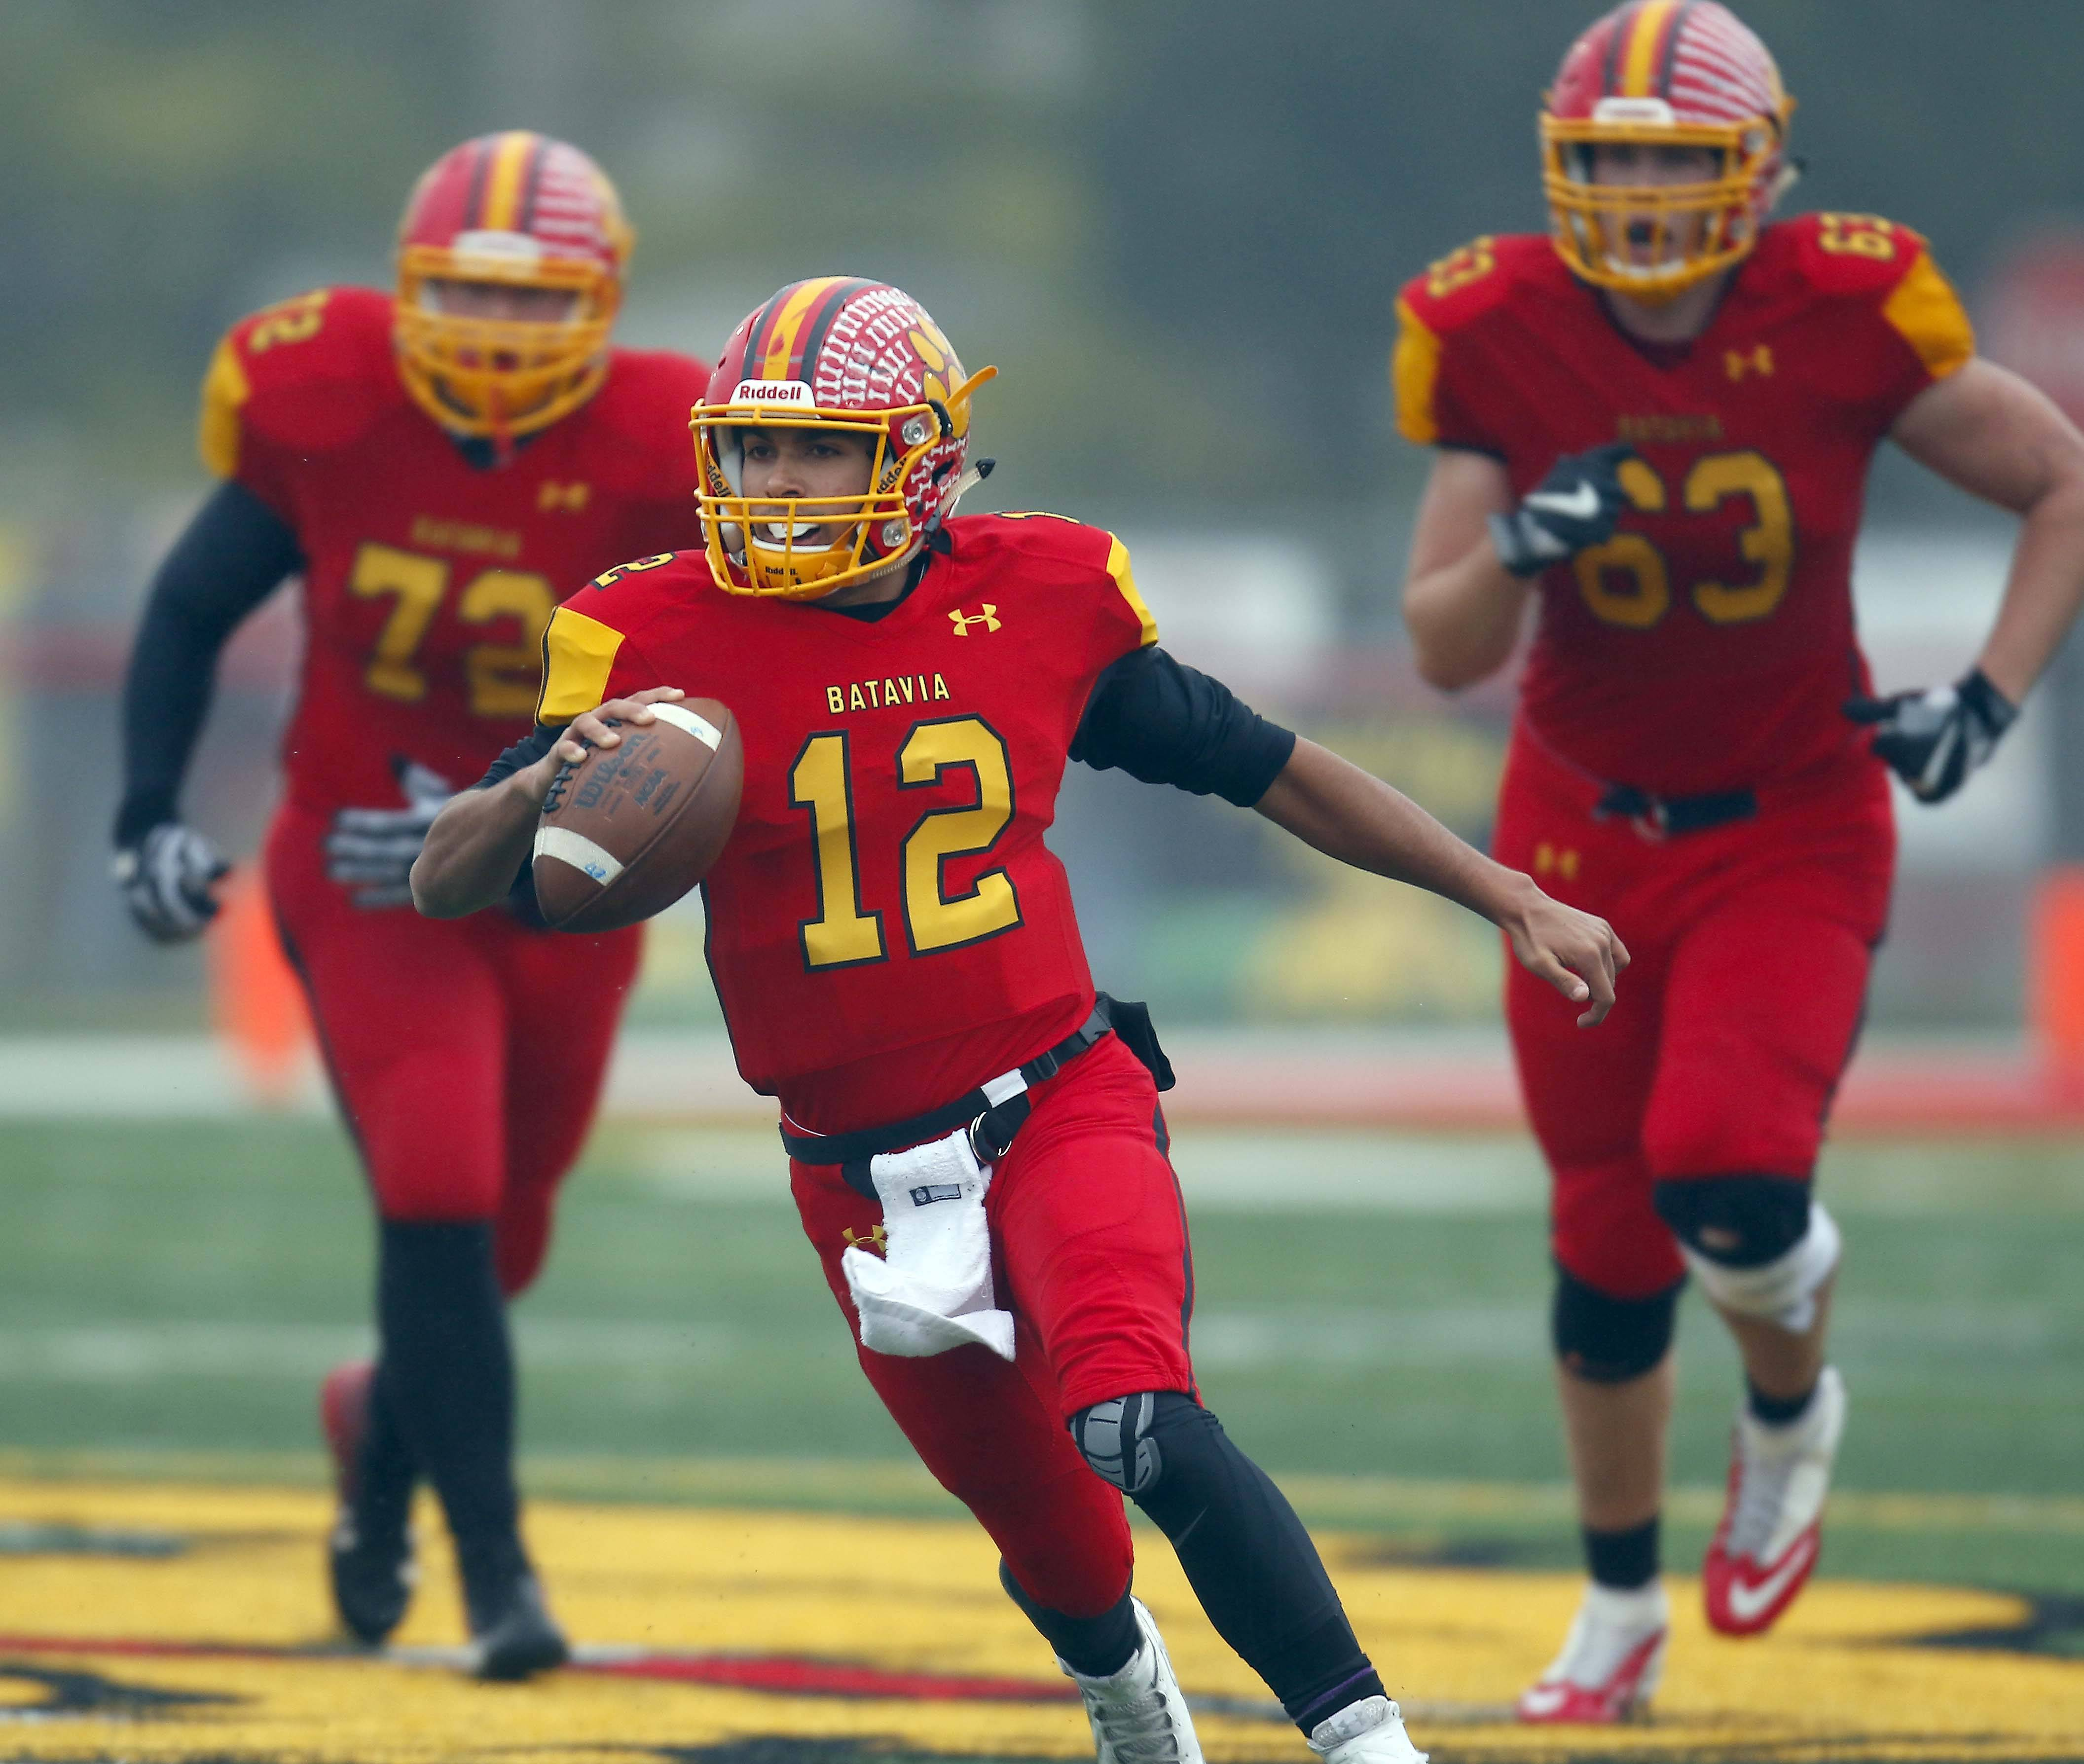 Batavia's Riley Cooper (12) moves upfield for more running room Saturday during the IHSA Class 7A football playoffs in Batavia.